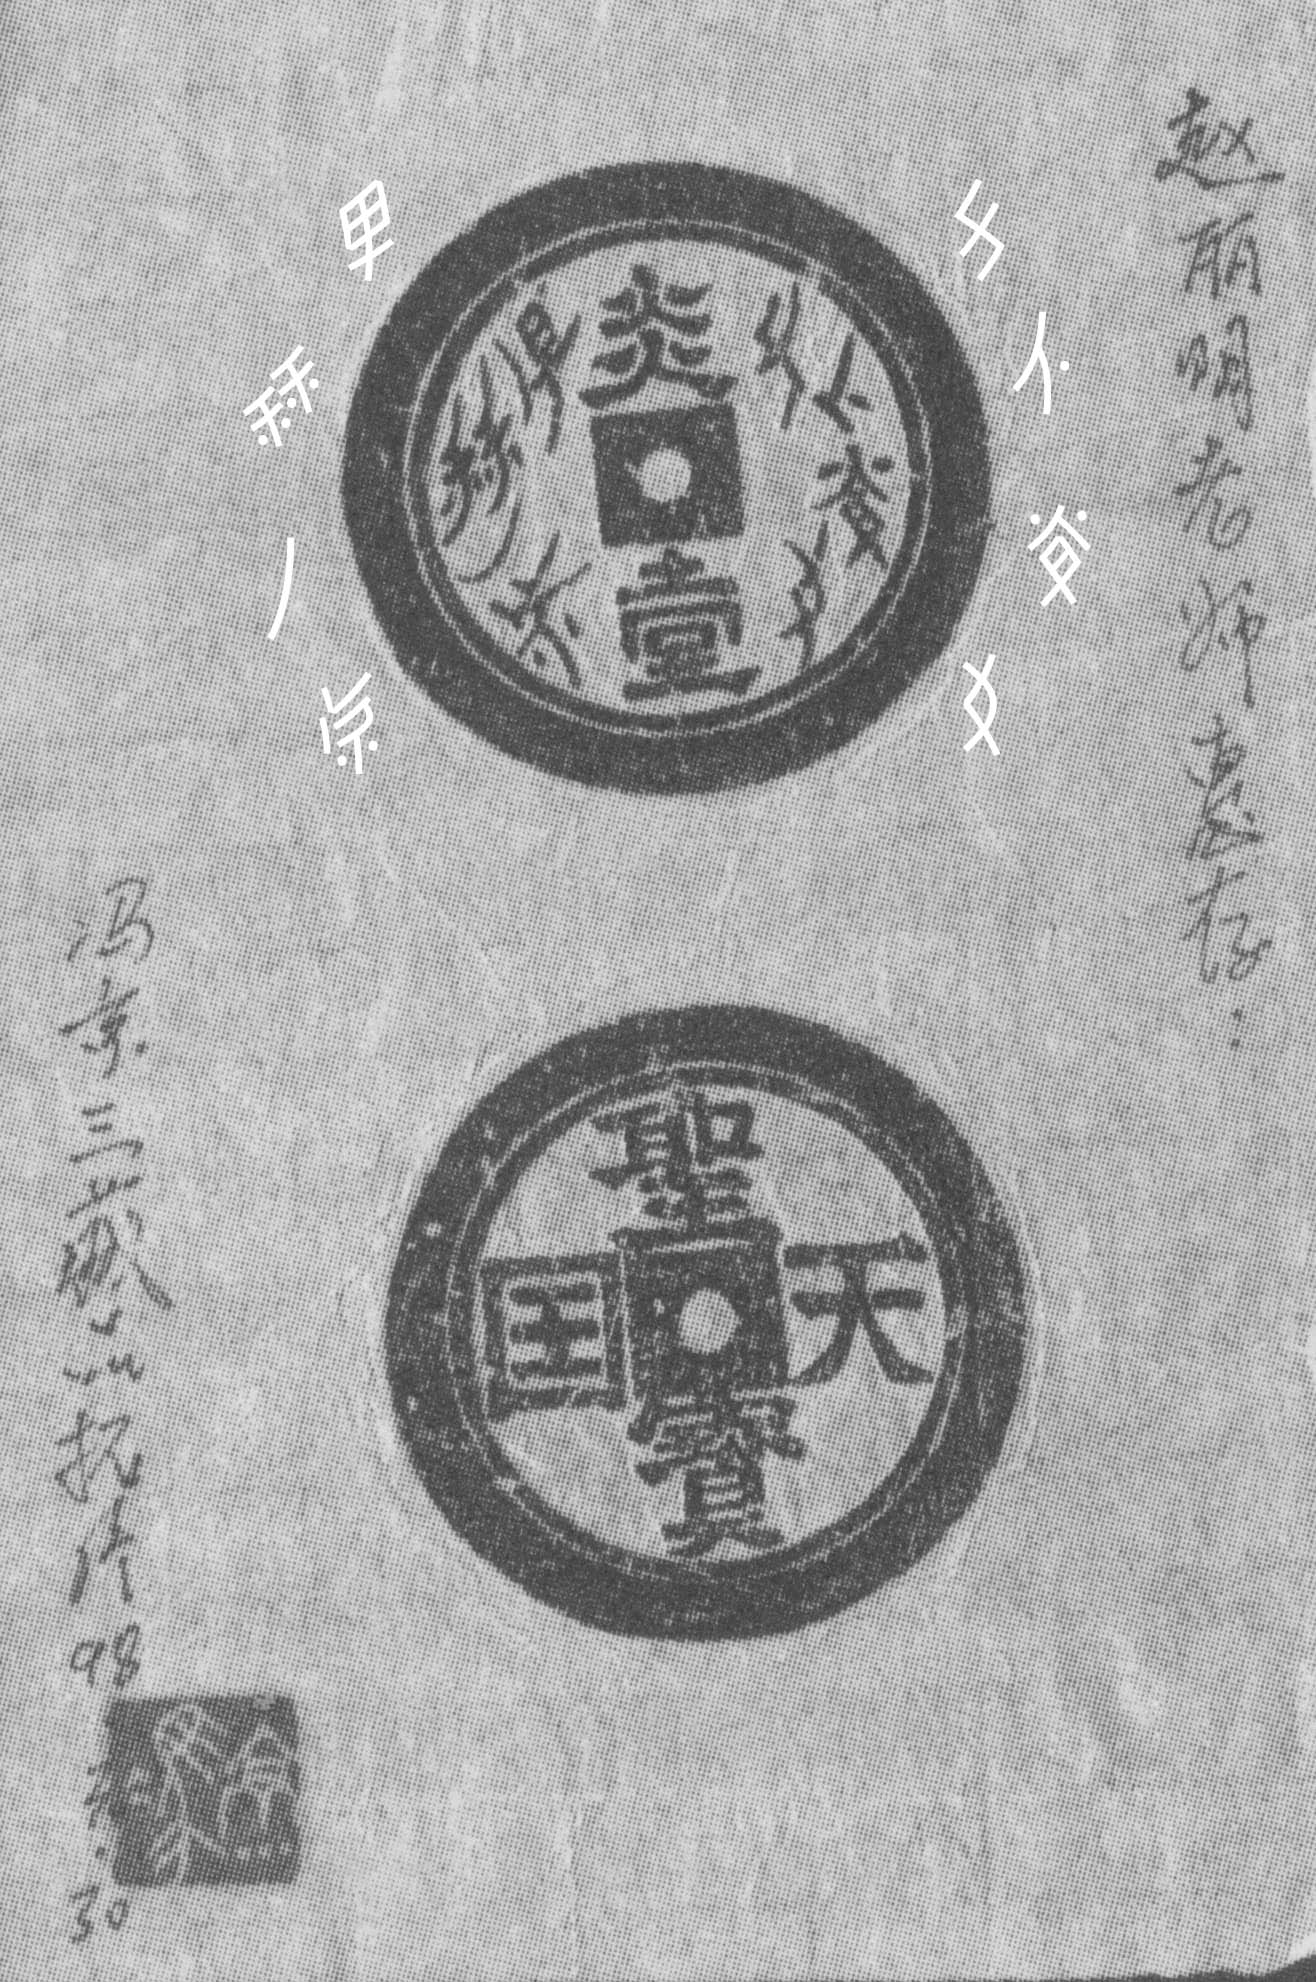 Bronze coin imprints with Nüshu characters on one side